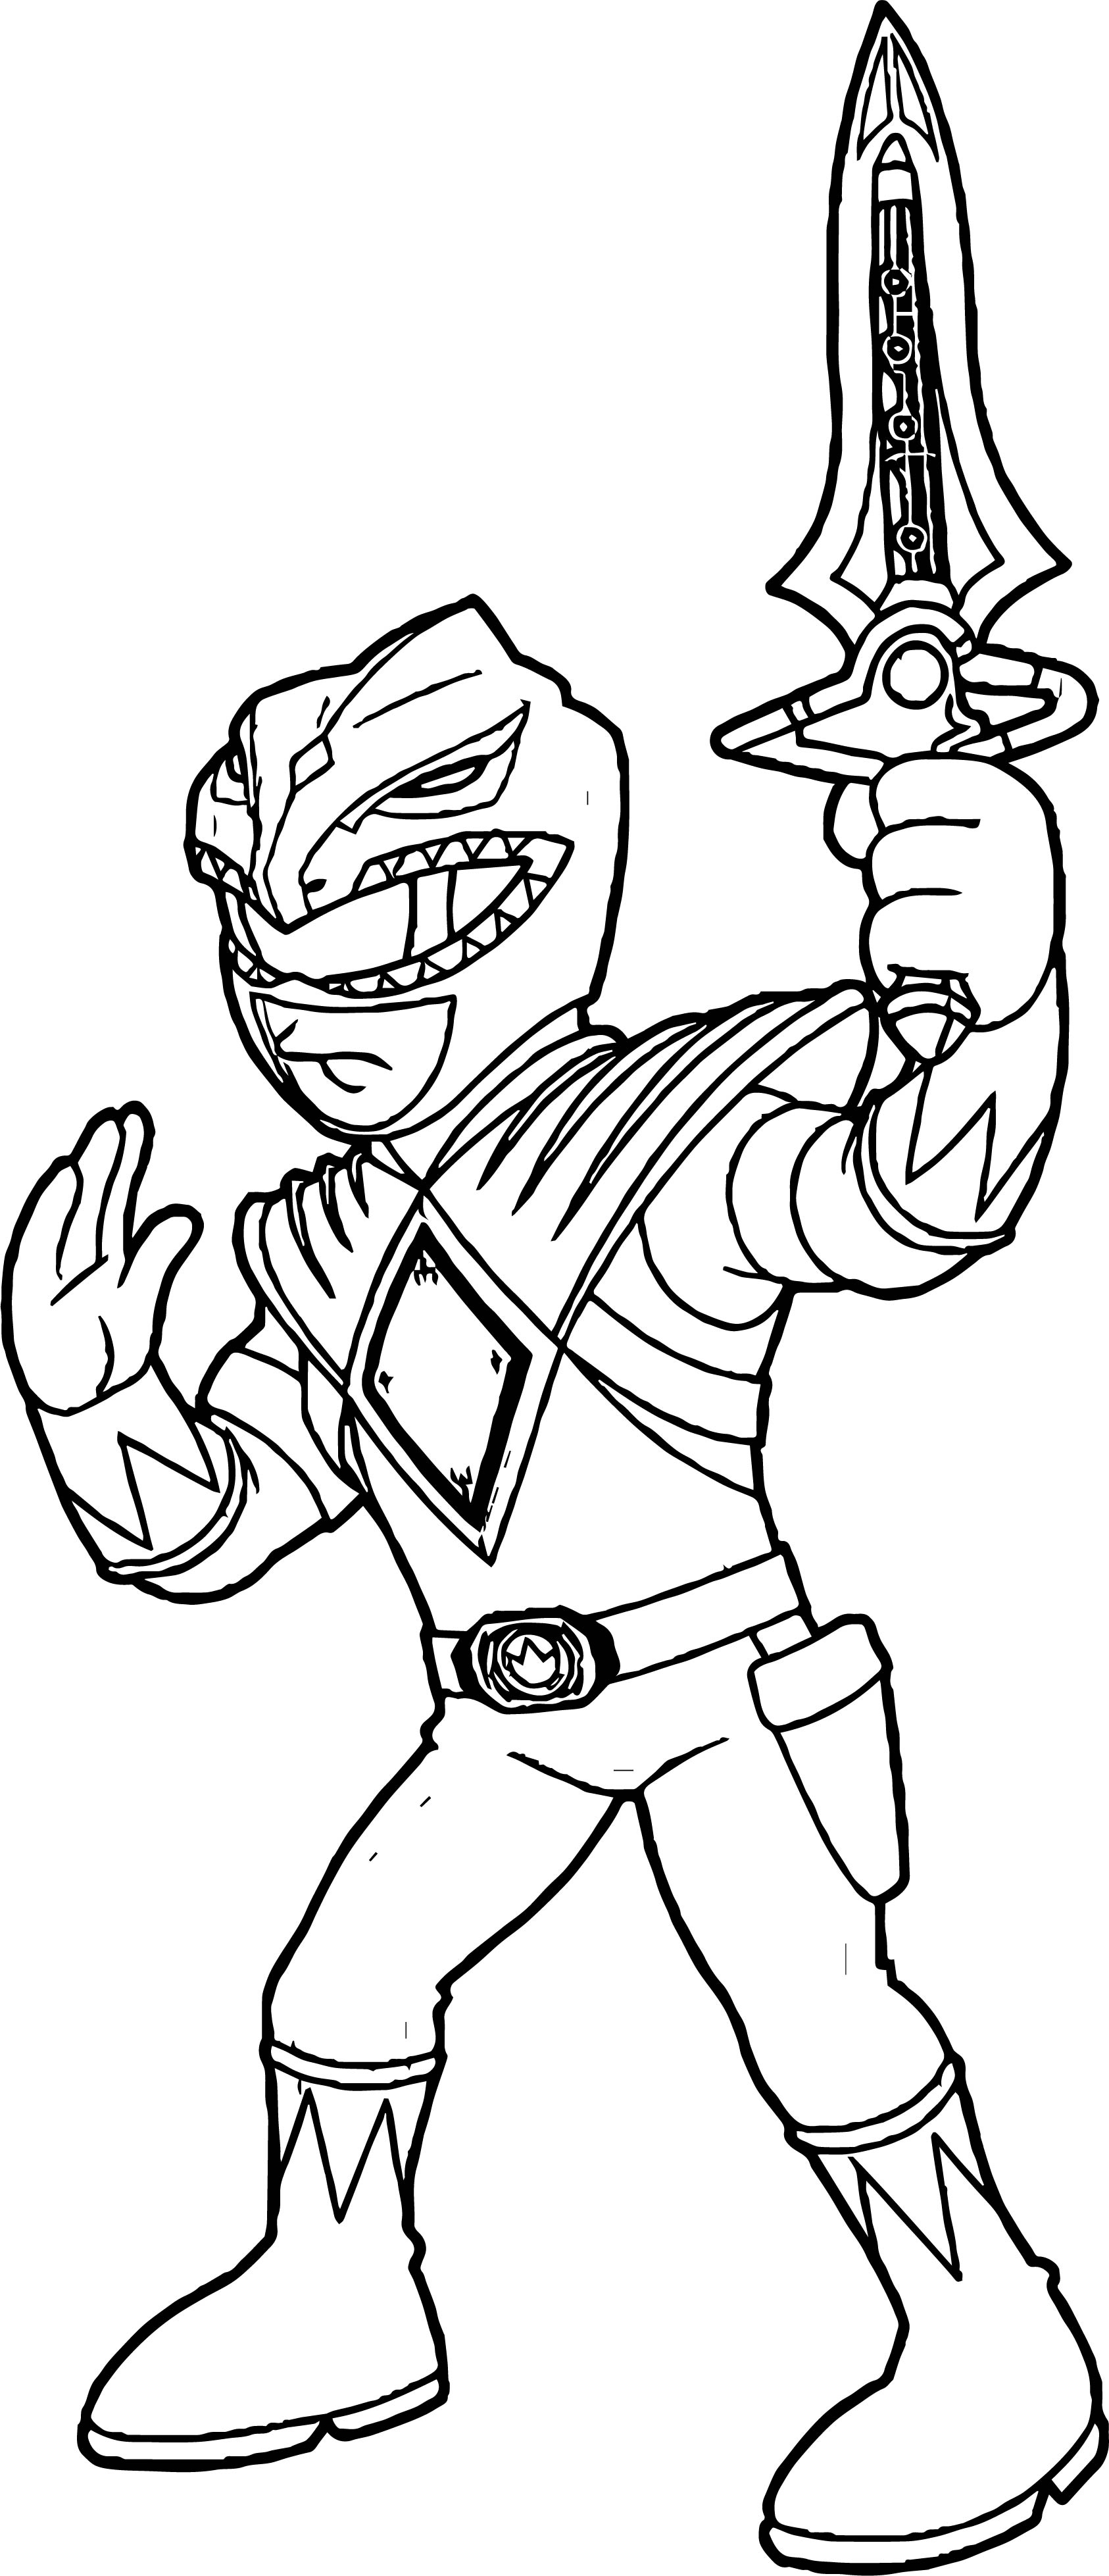 Power Rangers Spd Badge Coloring Pages